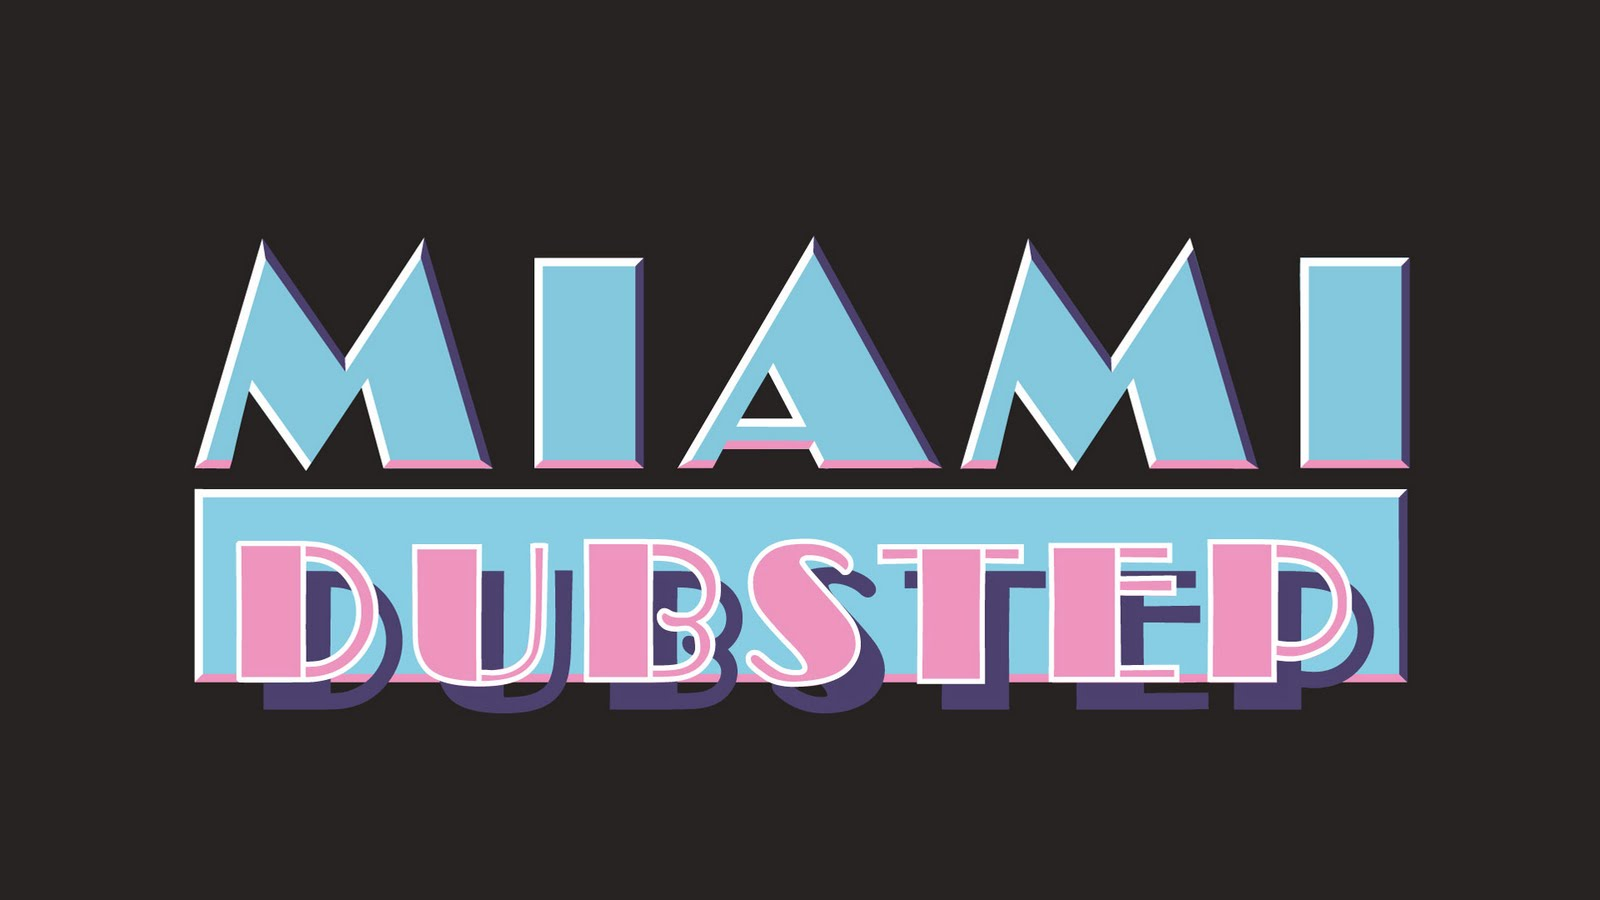 collection of miami dubstep friends desktop wallpaper ready for ...